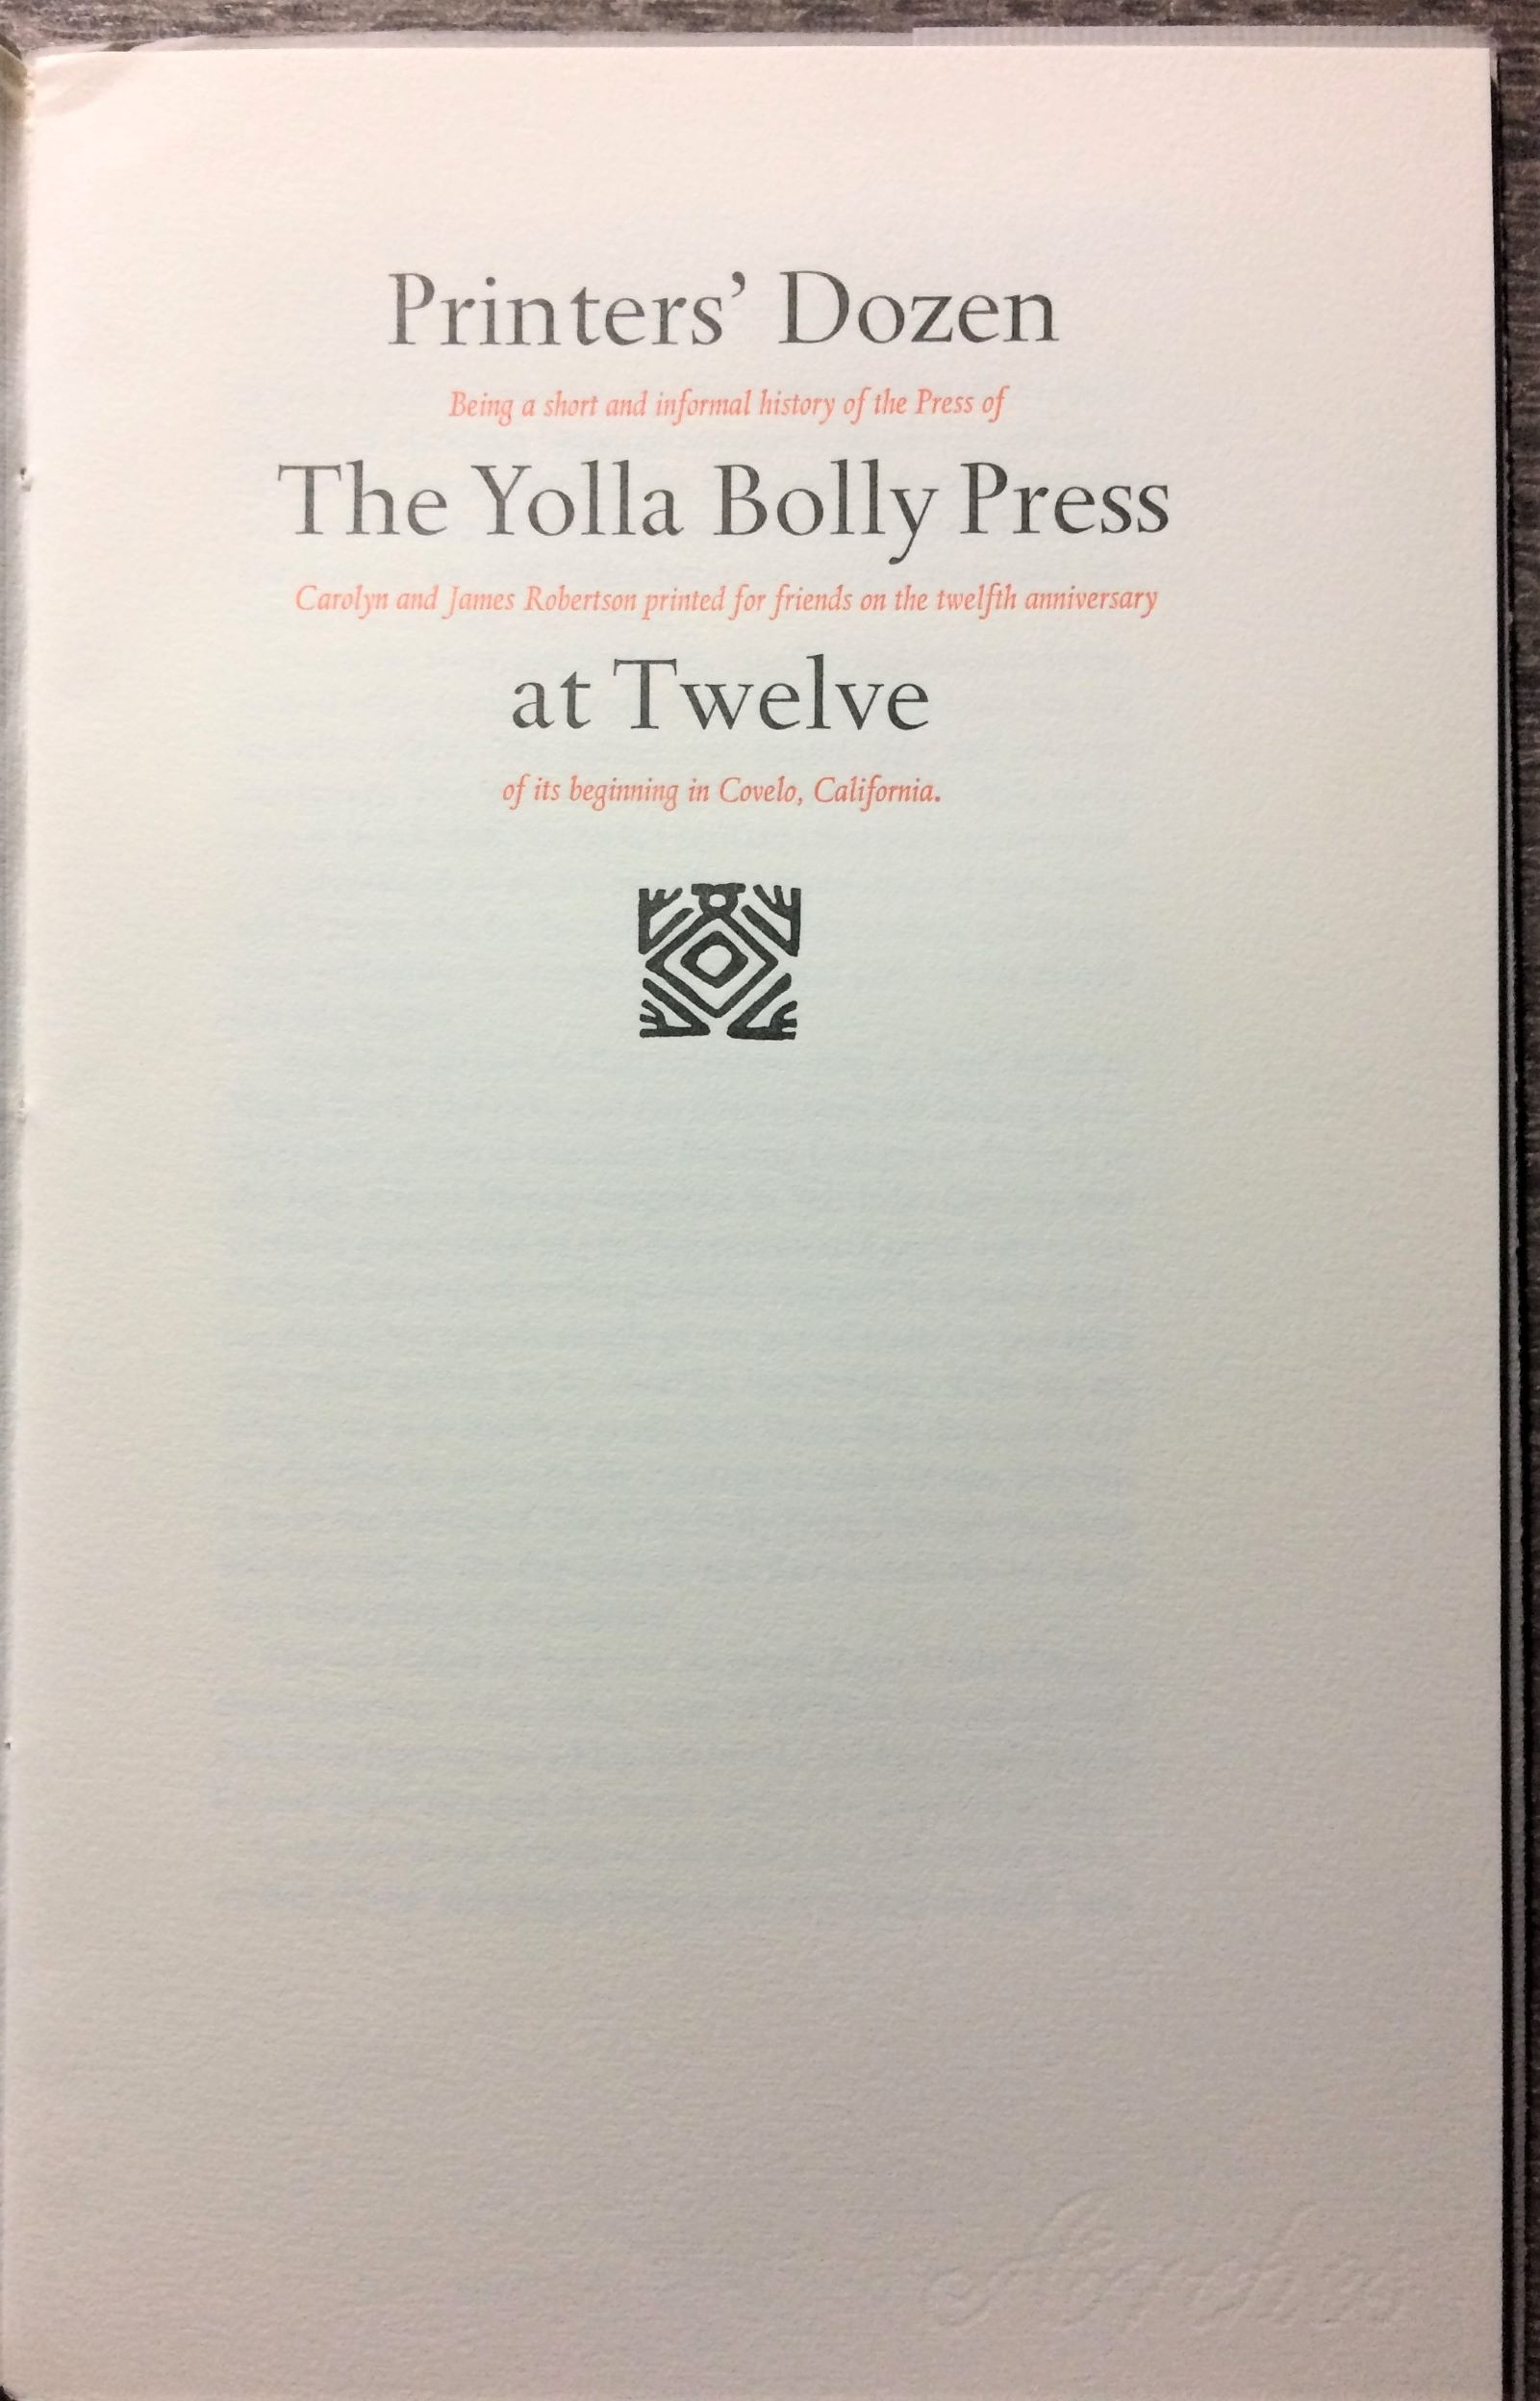 Image for Printer's Dozen. The Yolla Bolly Press at Twelve. Being a short and informal history of Carolyn and James Robertson printed for friends on the twelfth anniversary of its beginning in Covelo, California.